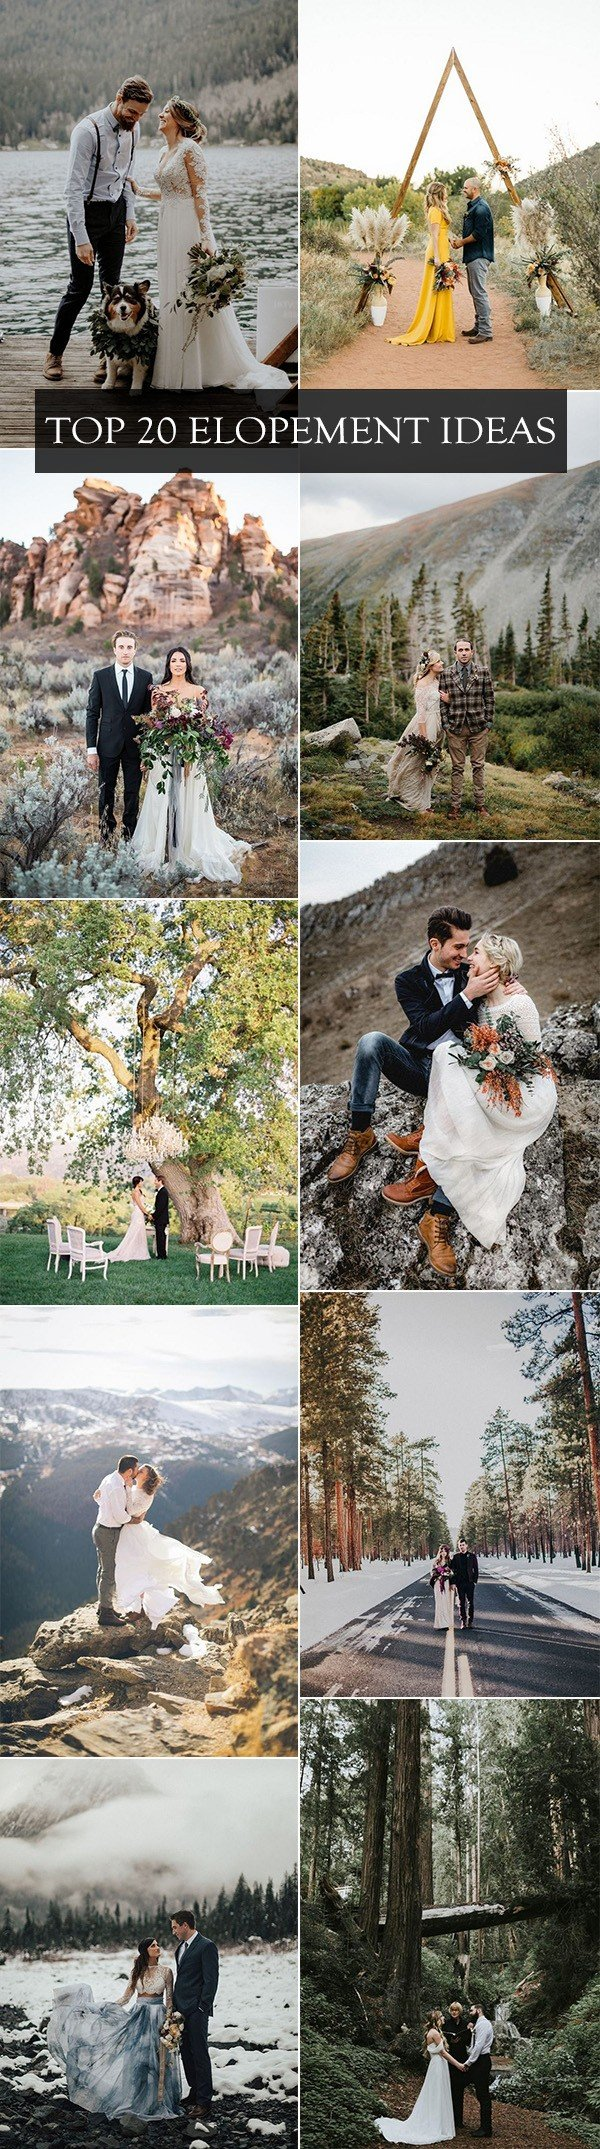 trending elopement ideas for intimate weddings